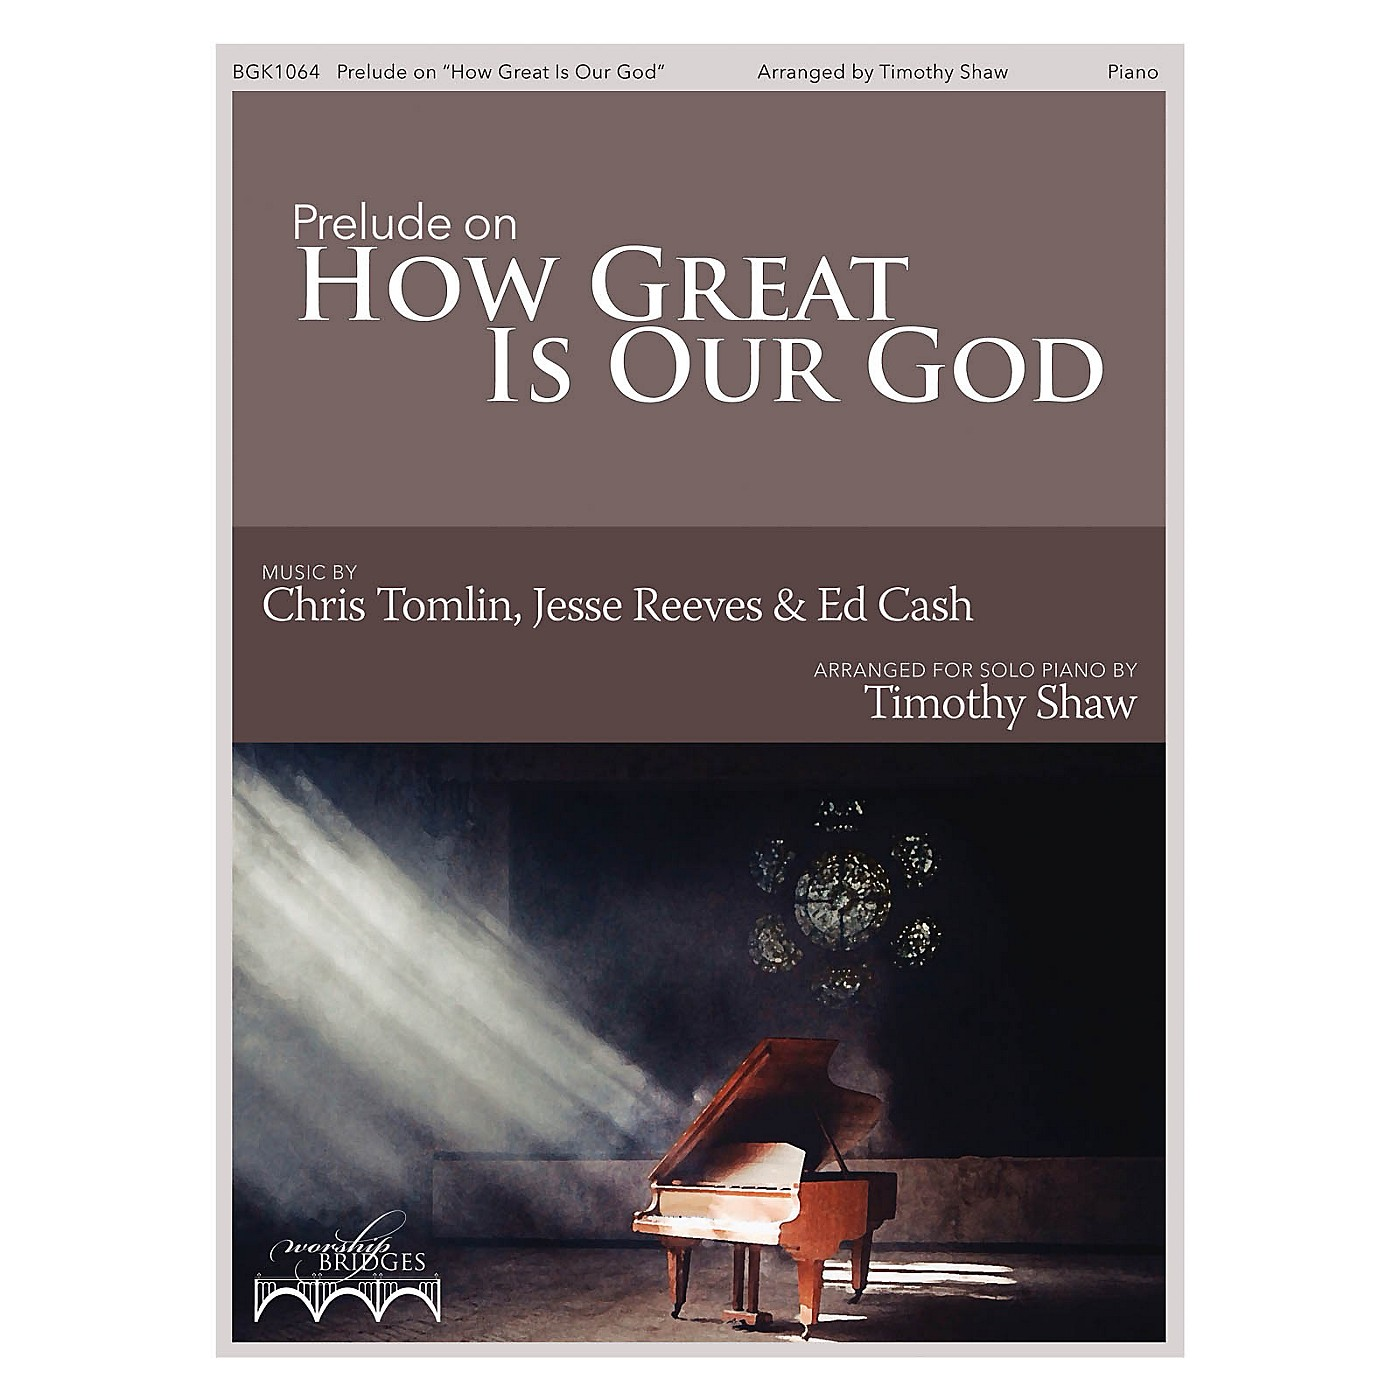 Fred Bock Music Prelude on How Great Is Our God (The Worship Bridges Series) thumbnail